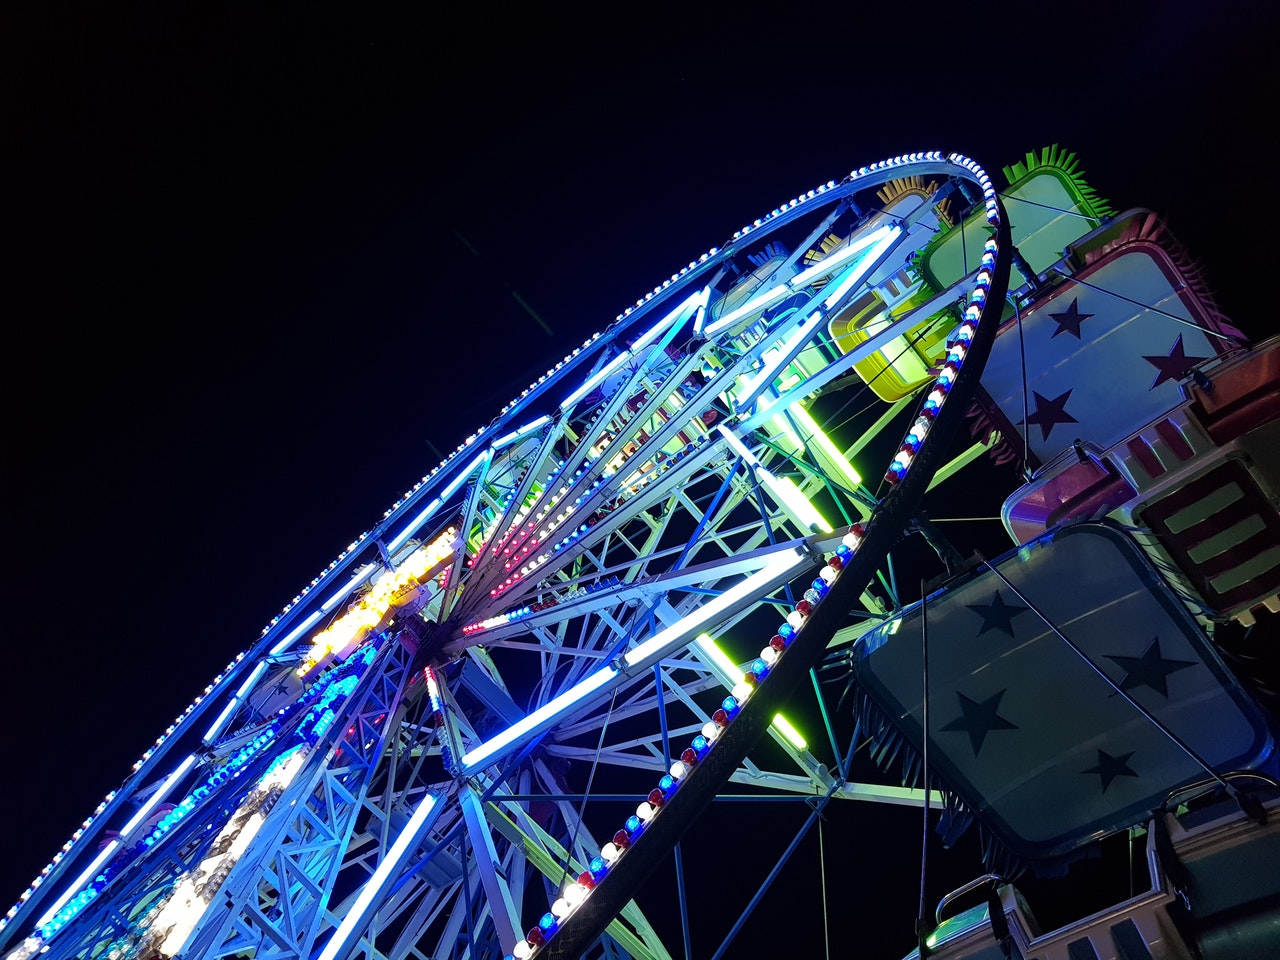 carnival rides at the clayton harvest festival 2019